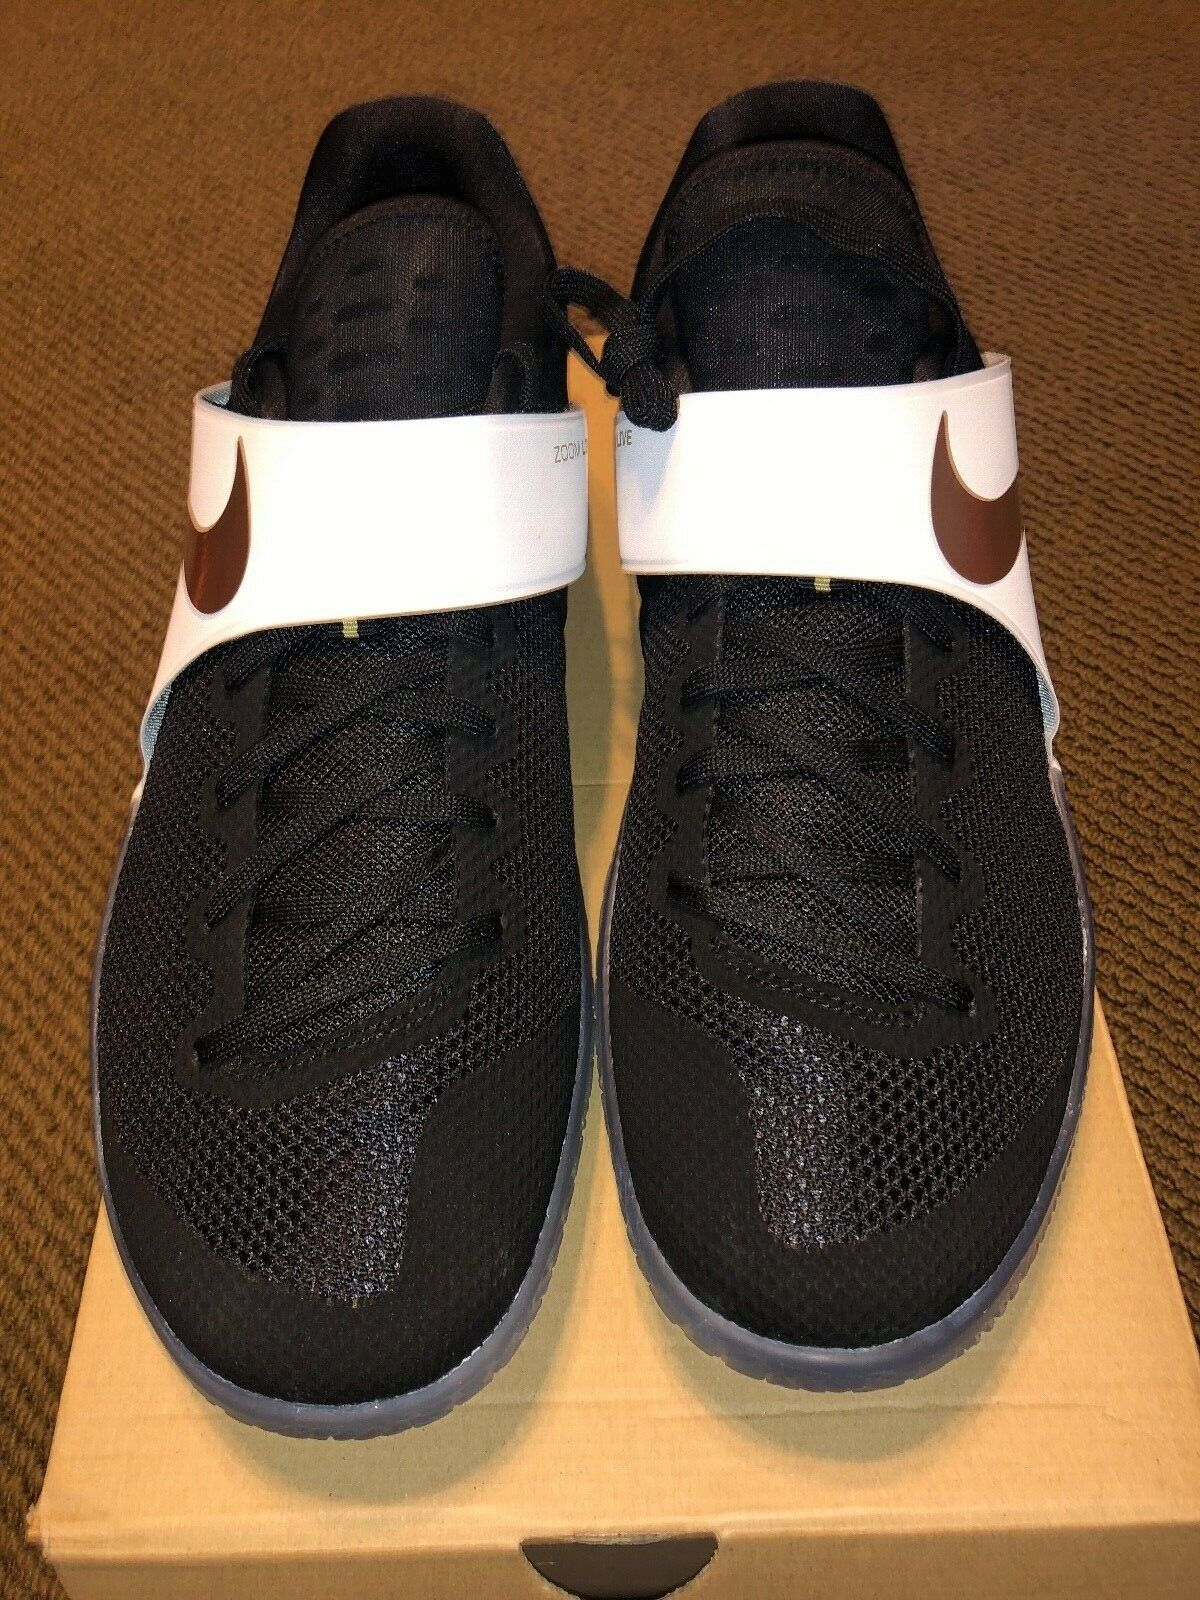 Nike Zoom Live men basketball sneakers low black white gold 852421 Size 14.5